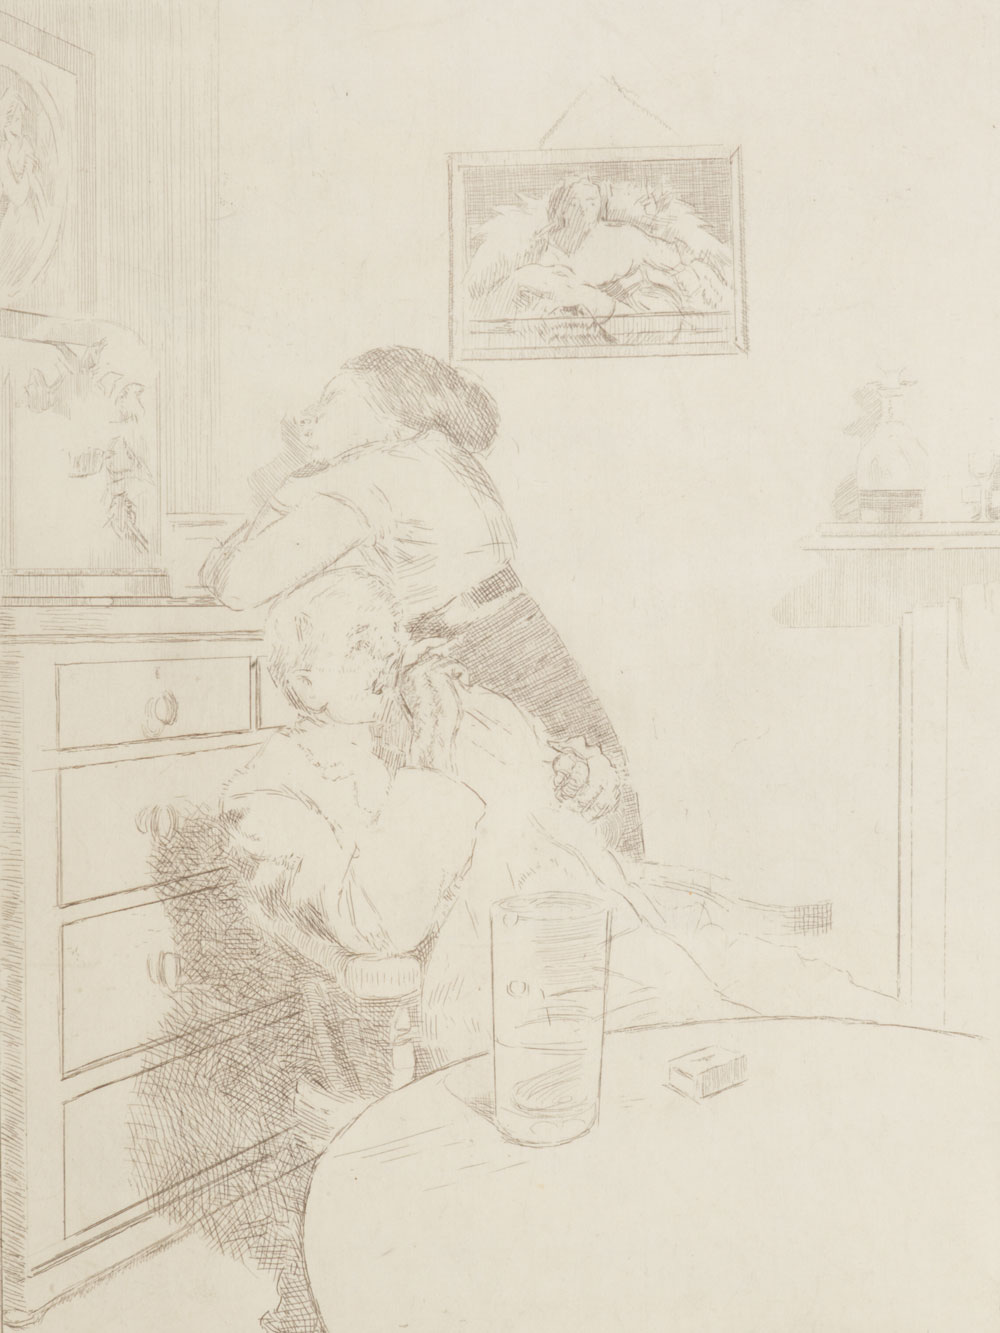 Etching of a couple lounging in a room, not looking at each other